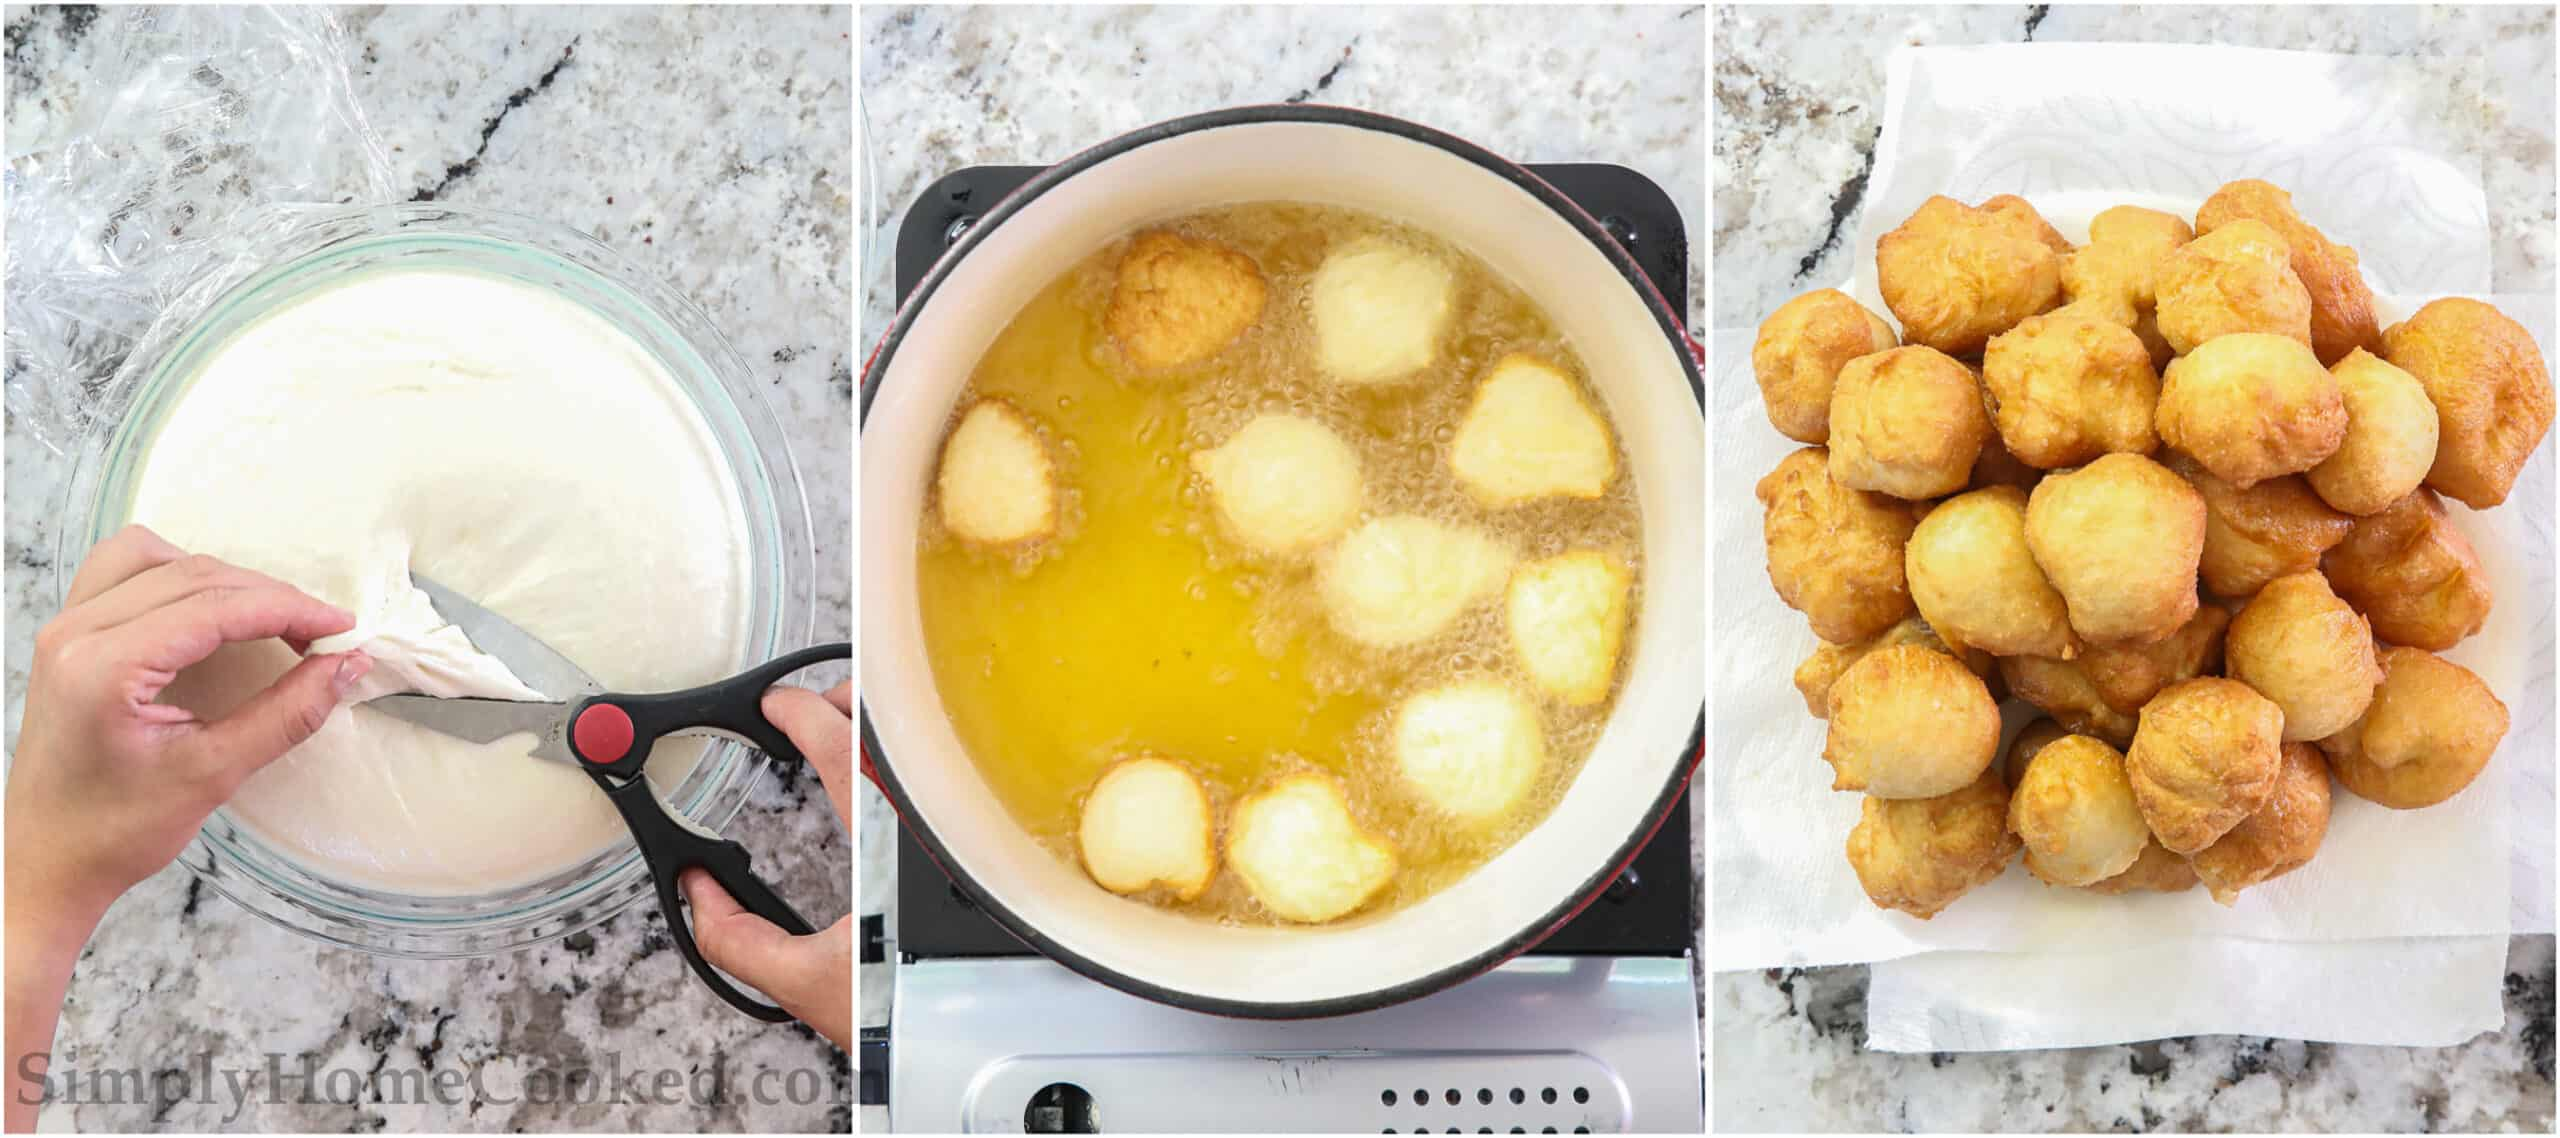 Steps to make Zeppoles - Italian donuts - including snipping the dough into balls and then frying them, before allowing them to cool on a paper towel lined plate.